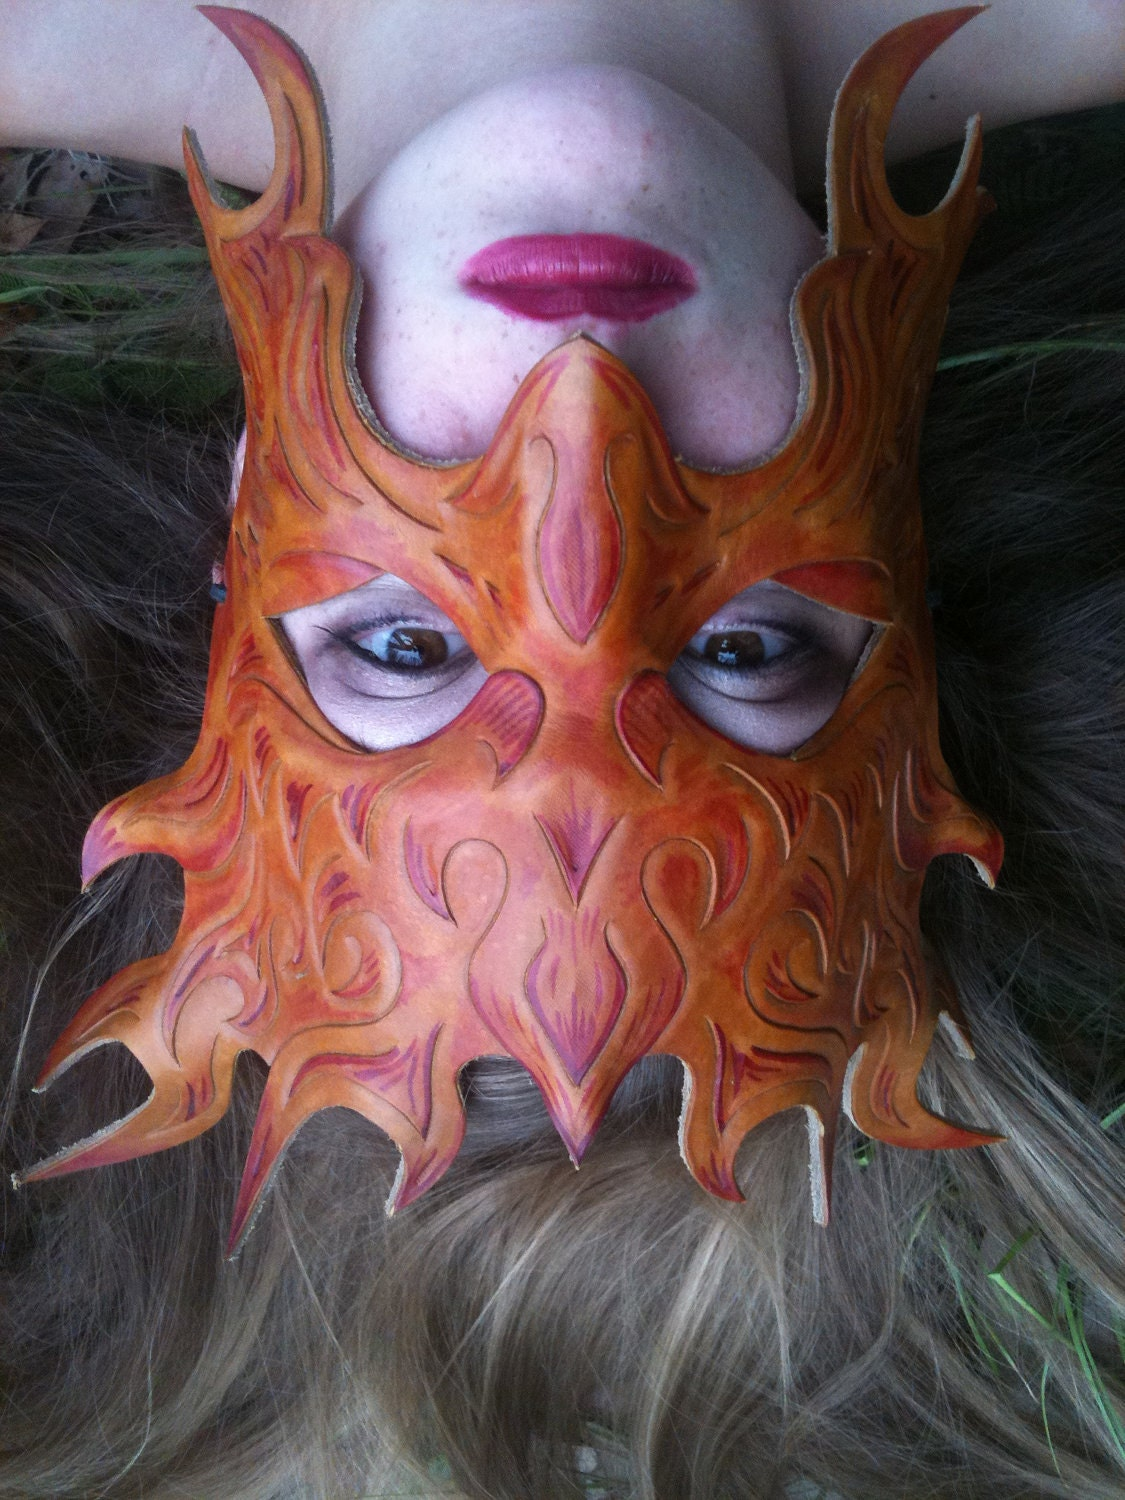 Leather Flame Mask